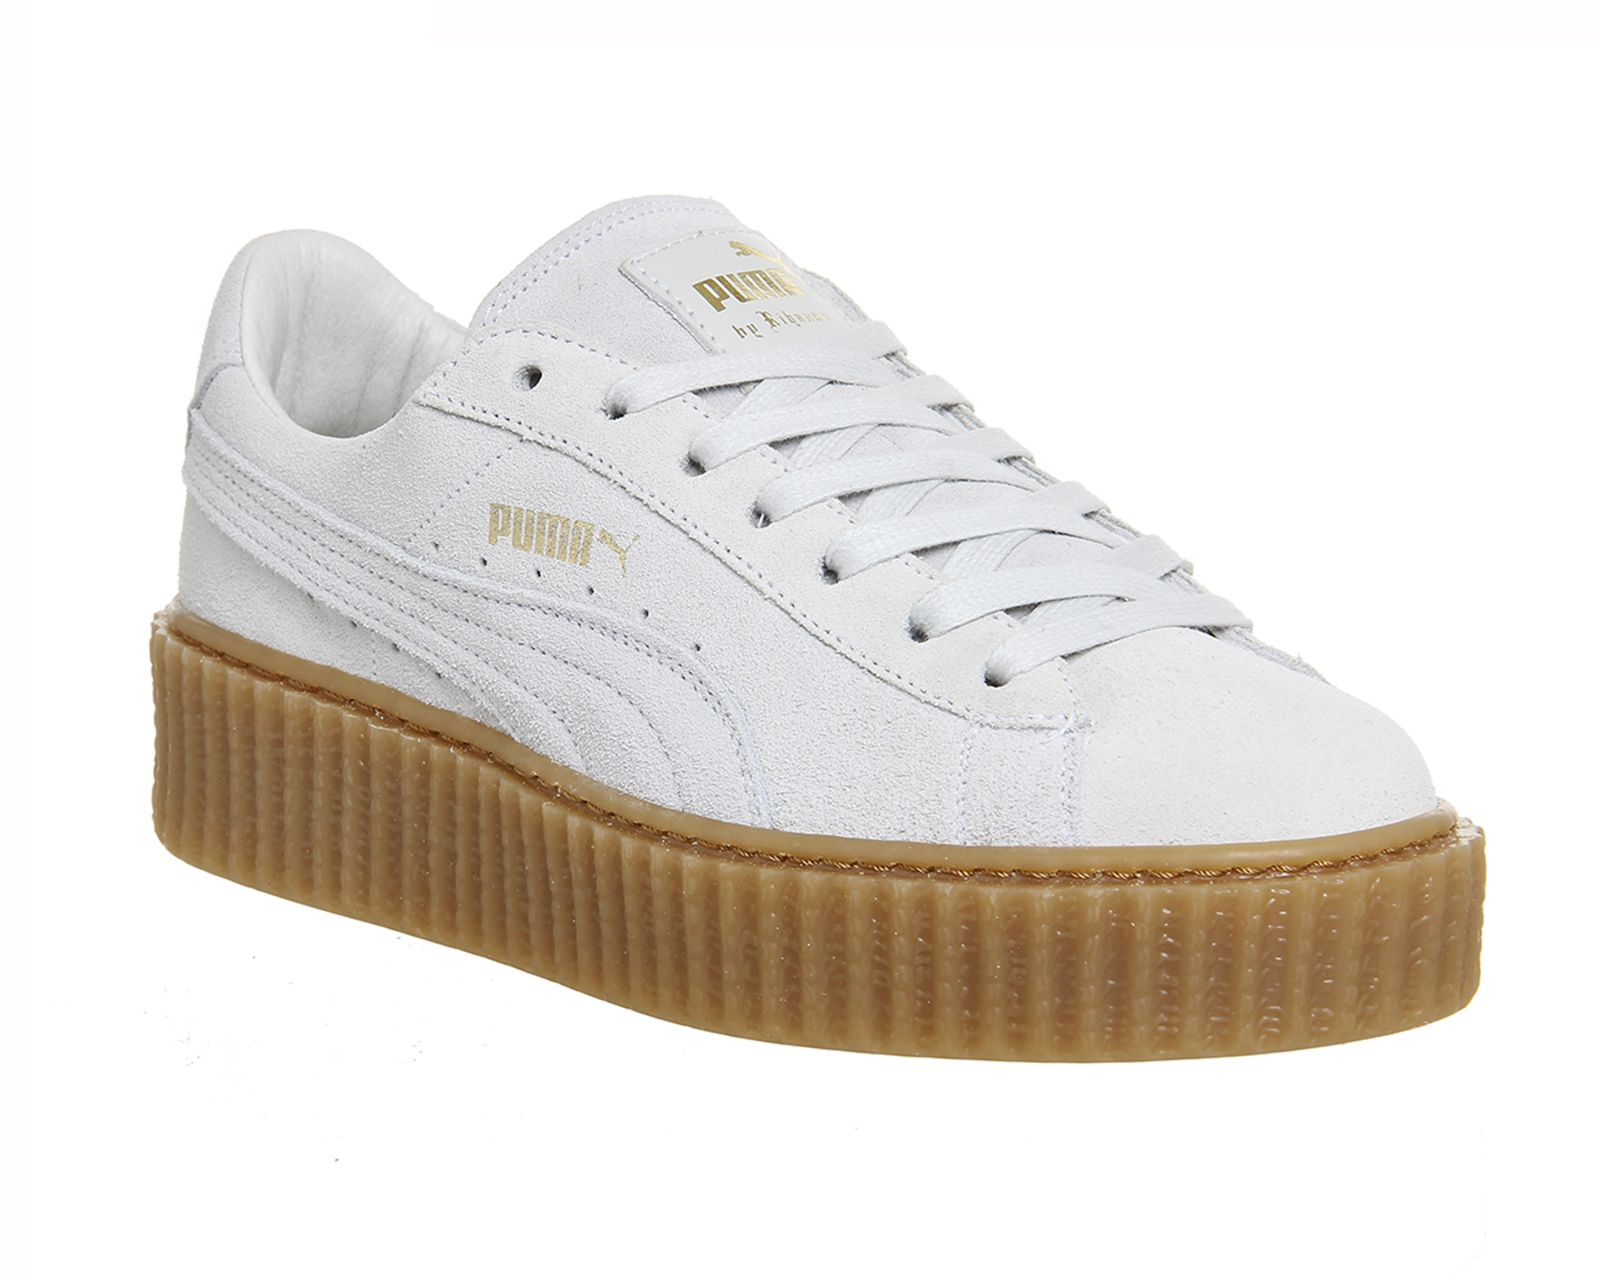 puma suede creepers rihanna star white oatmeal. Black Bedroom Furniture Sets. Home Design Ideas